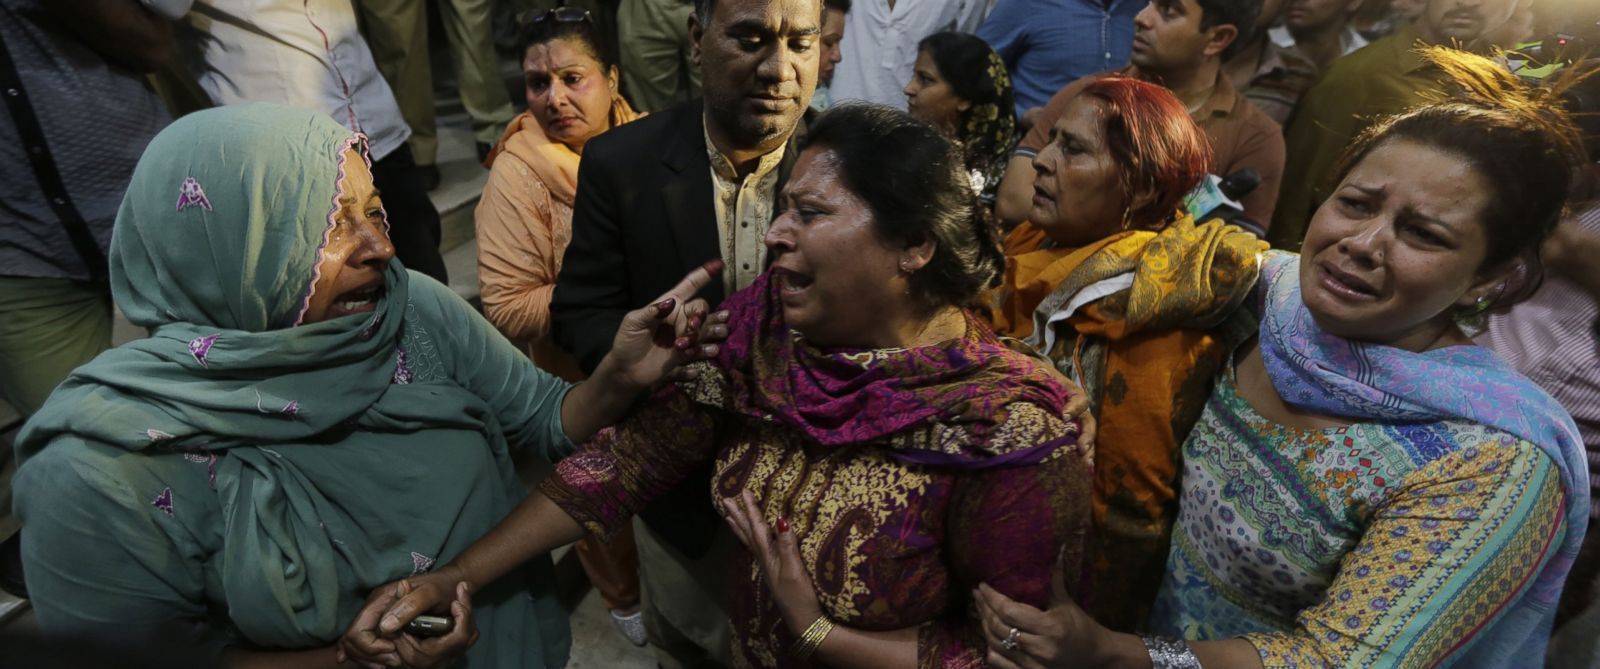 PHOTO: Relatives of the victims of a suicide bomb blast cry outside a hospital in Lahore, Pakistan, March 27, 2016.